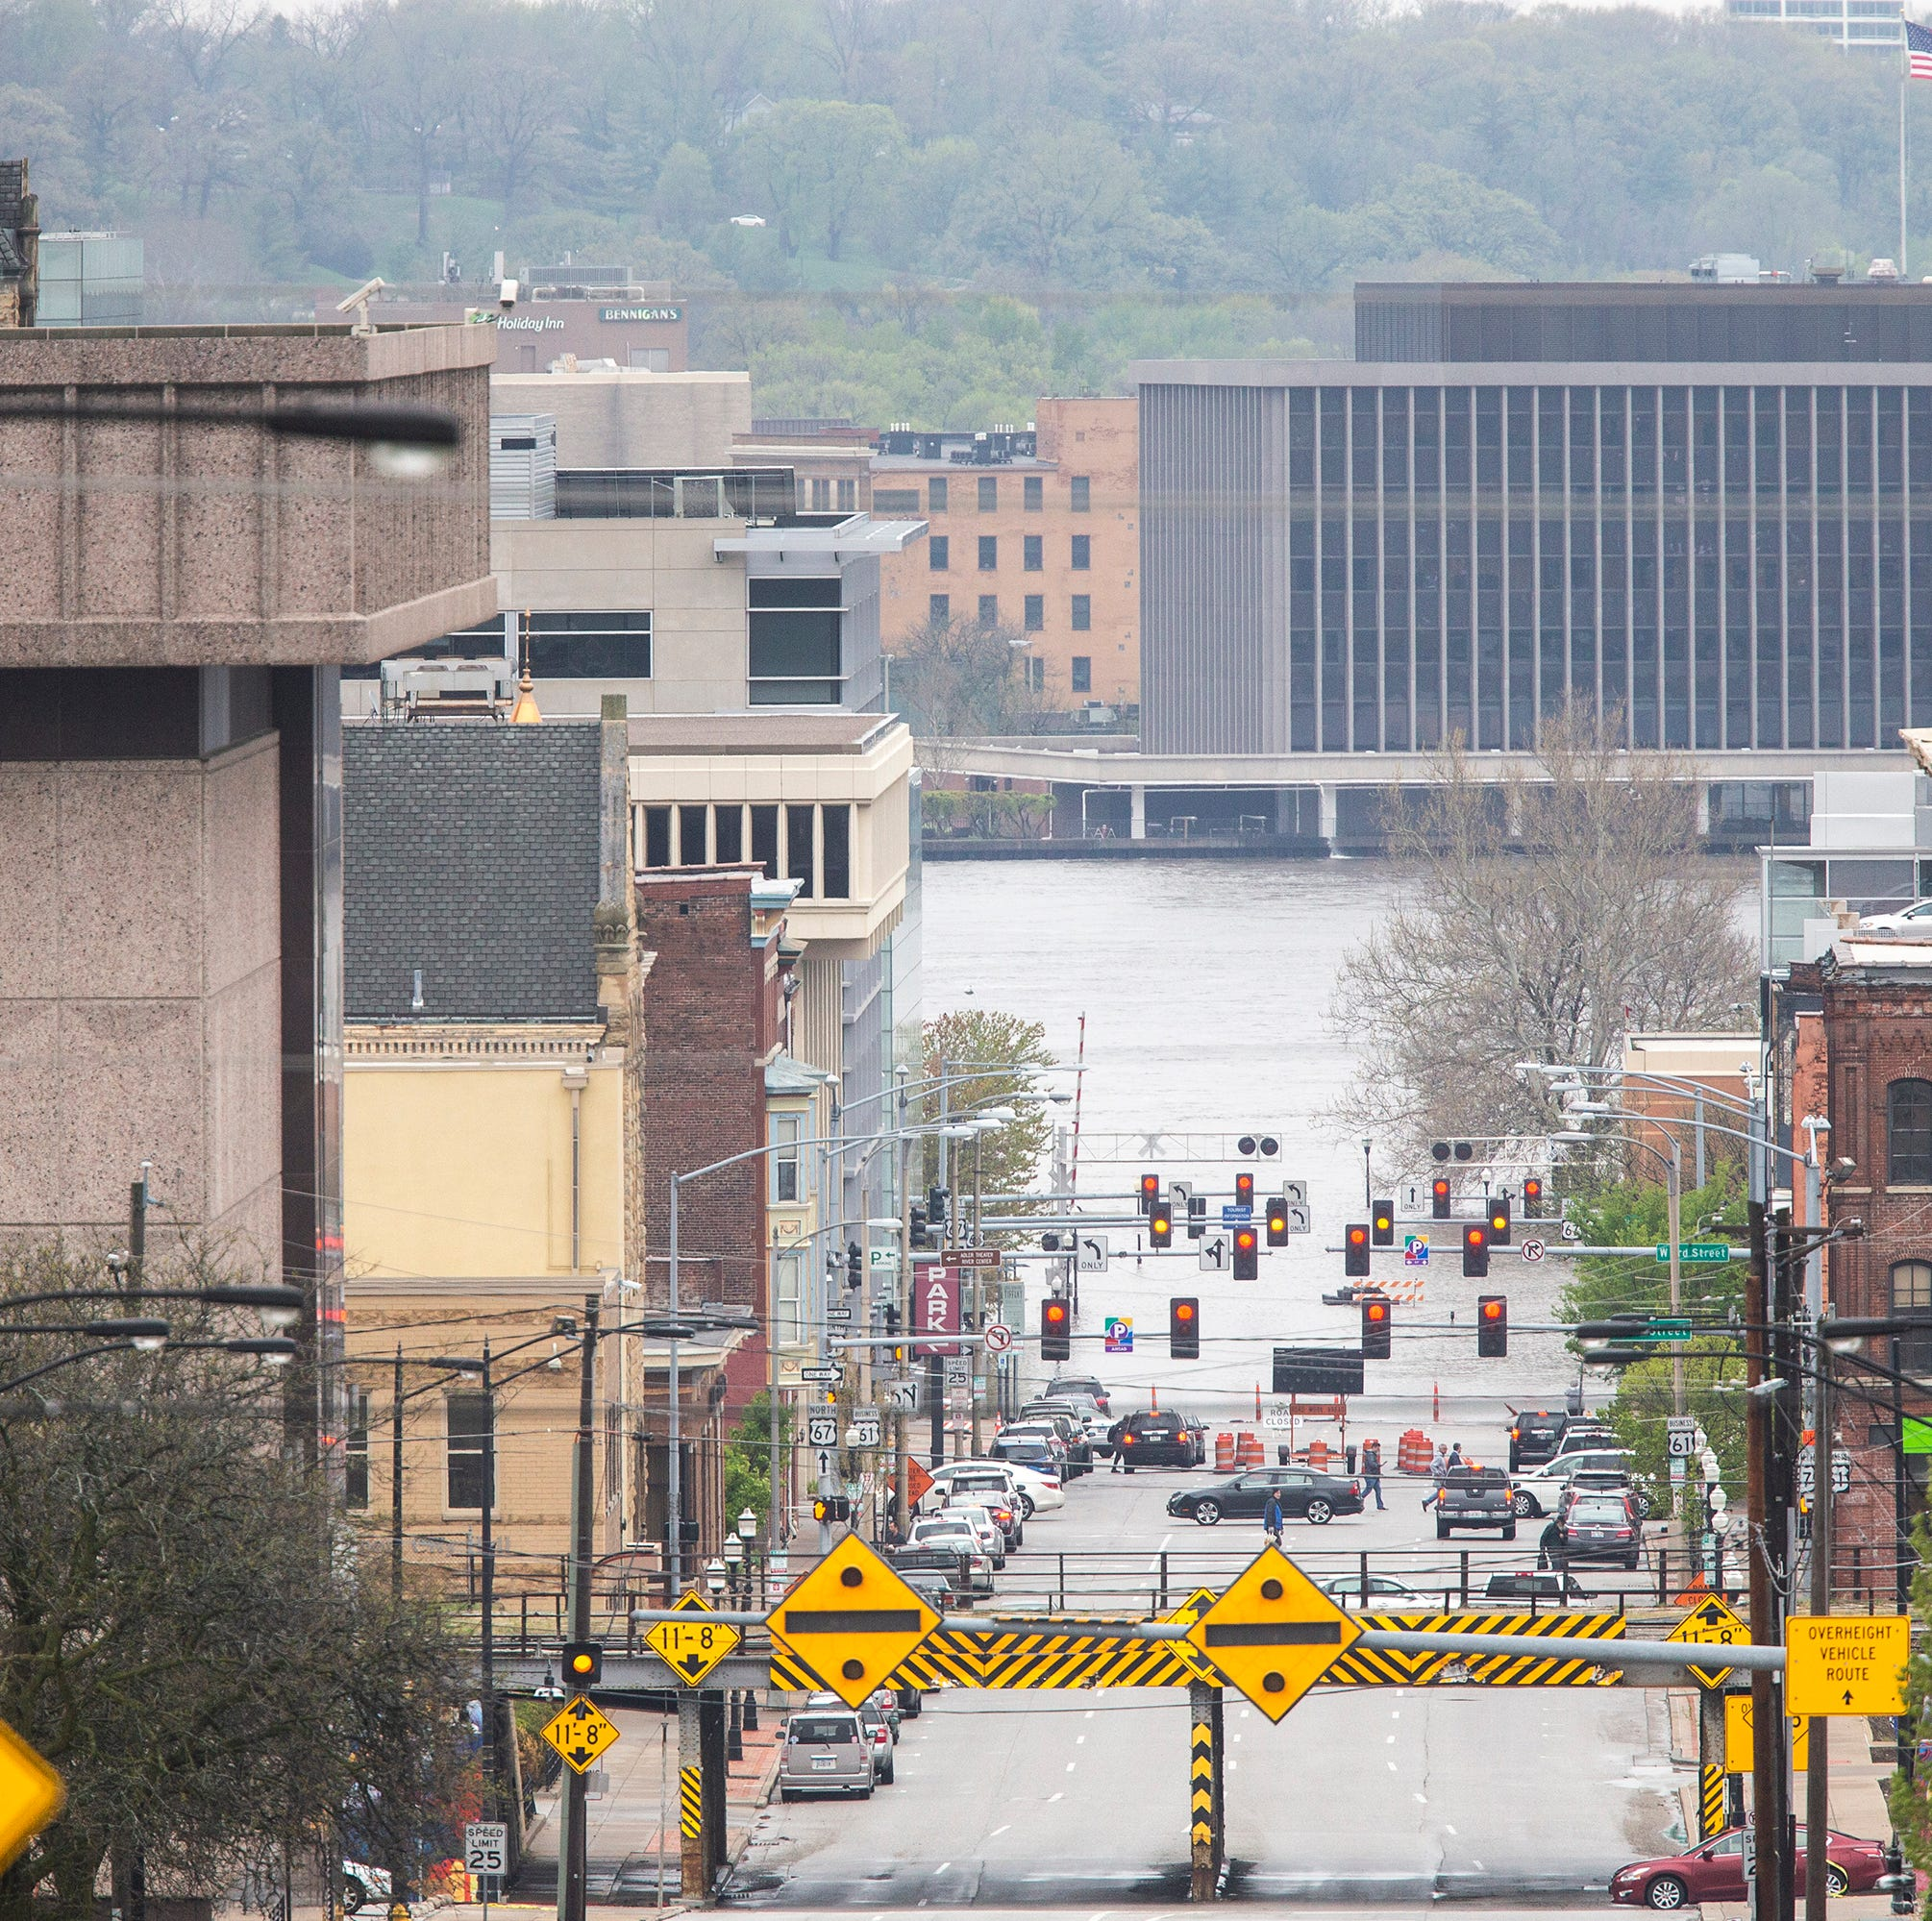 Flash flood emergency in downtown Davenport as barrier is threatened, weather service says